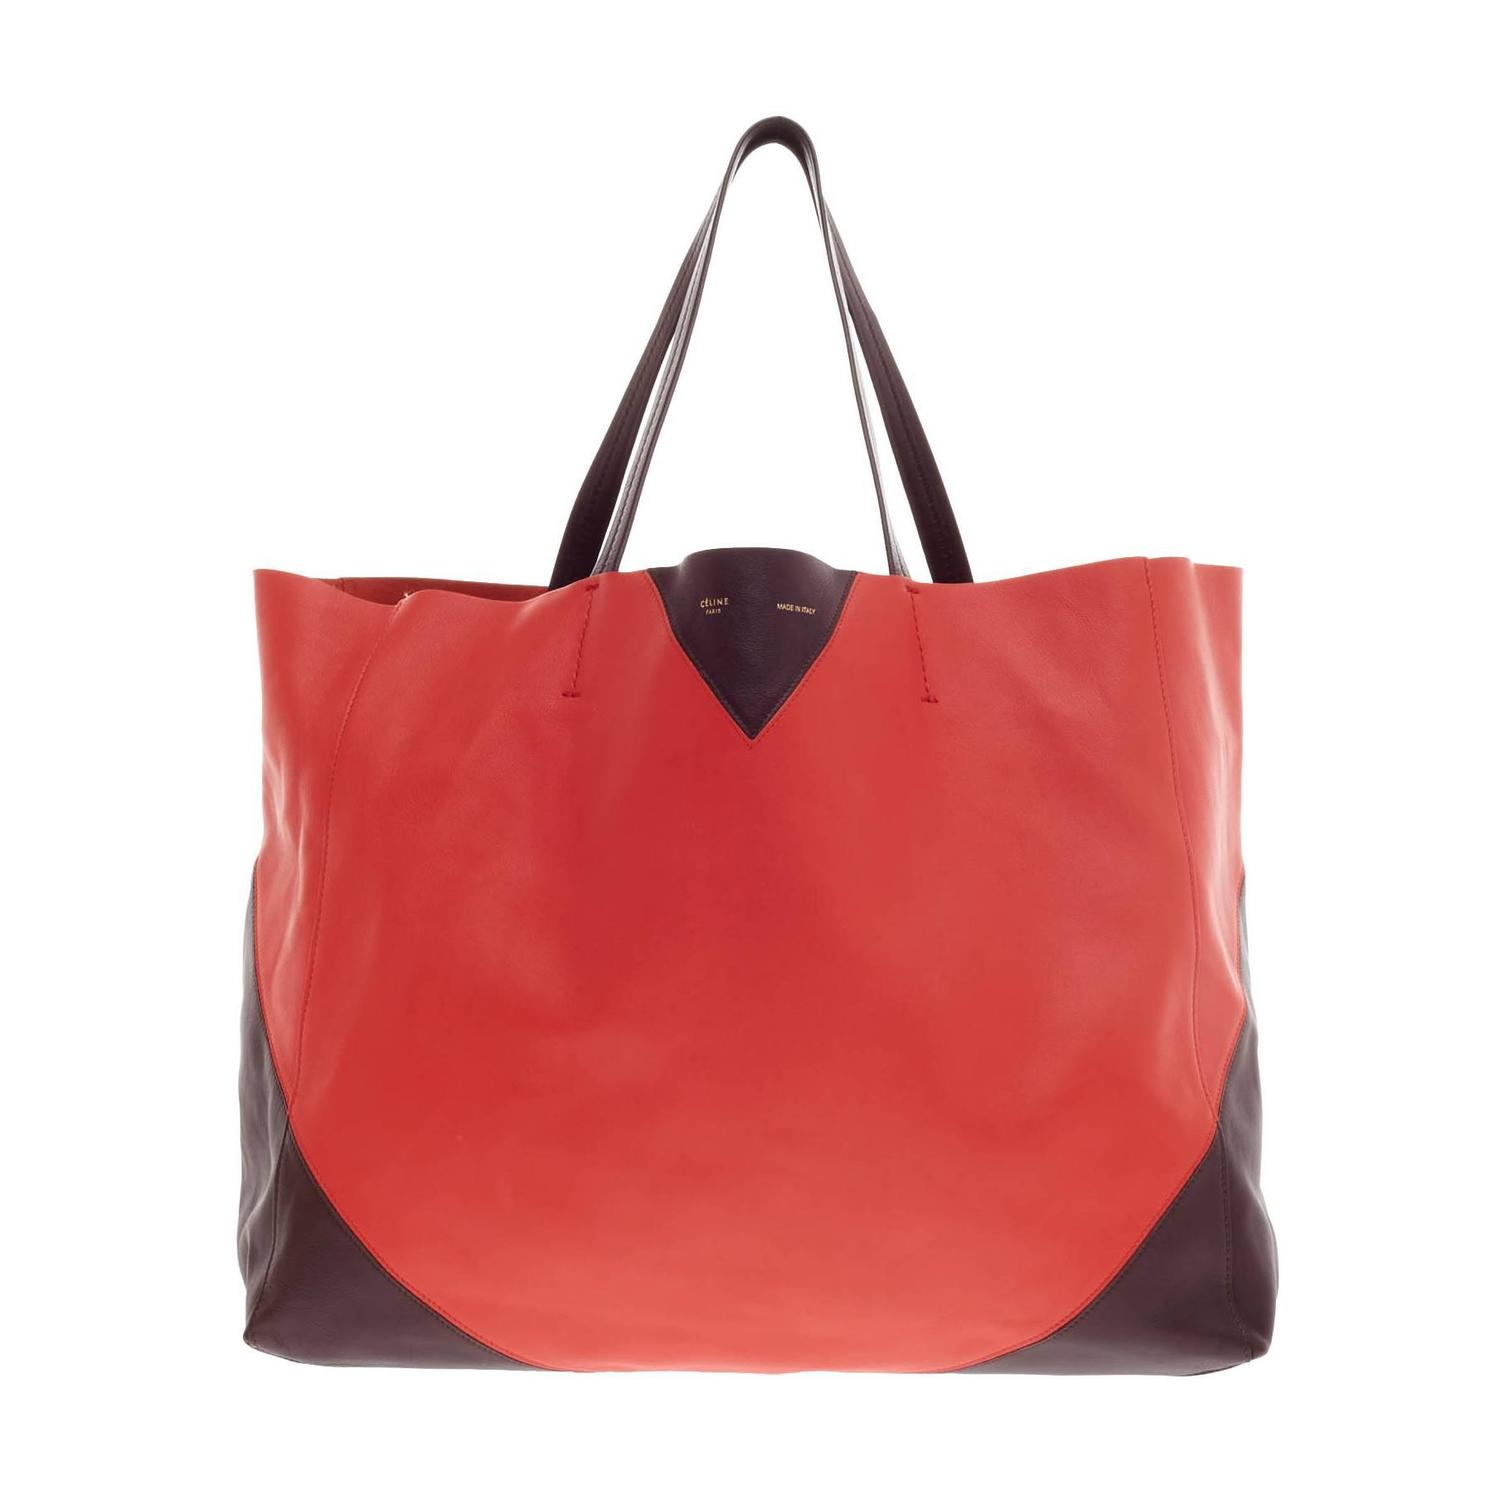 Celine Horizontal Cabas Tote Leather Large For Sale at 1stdibs